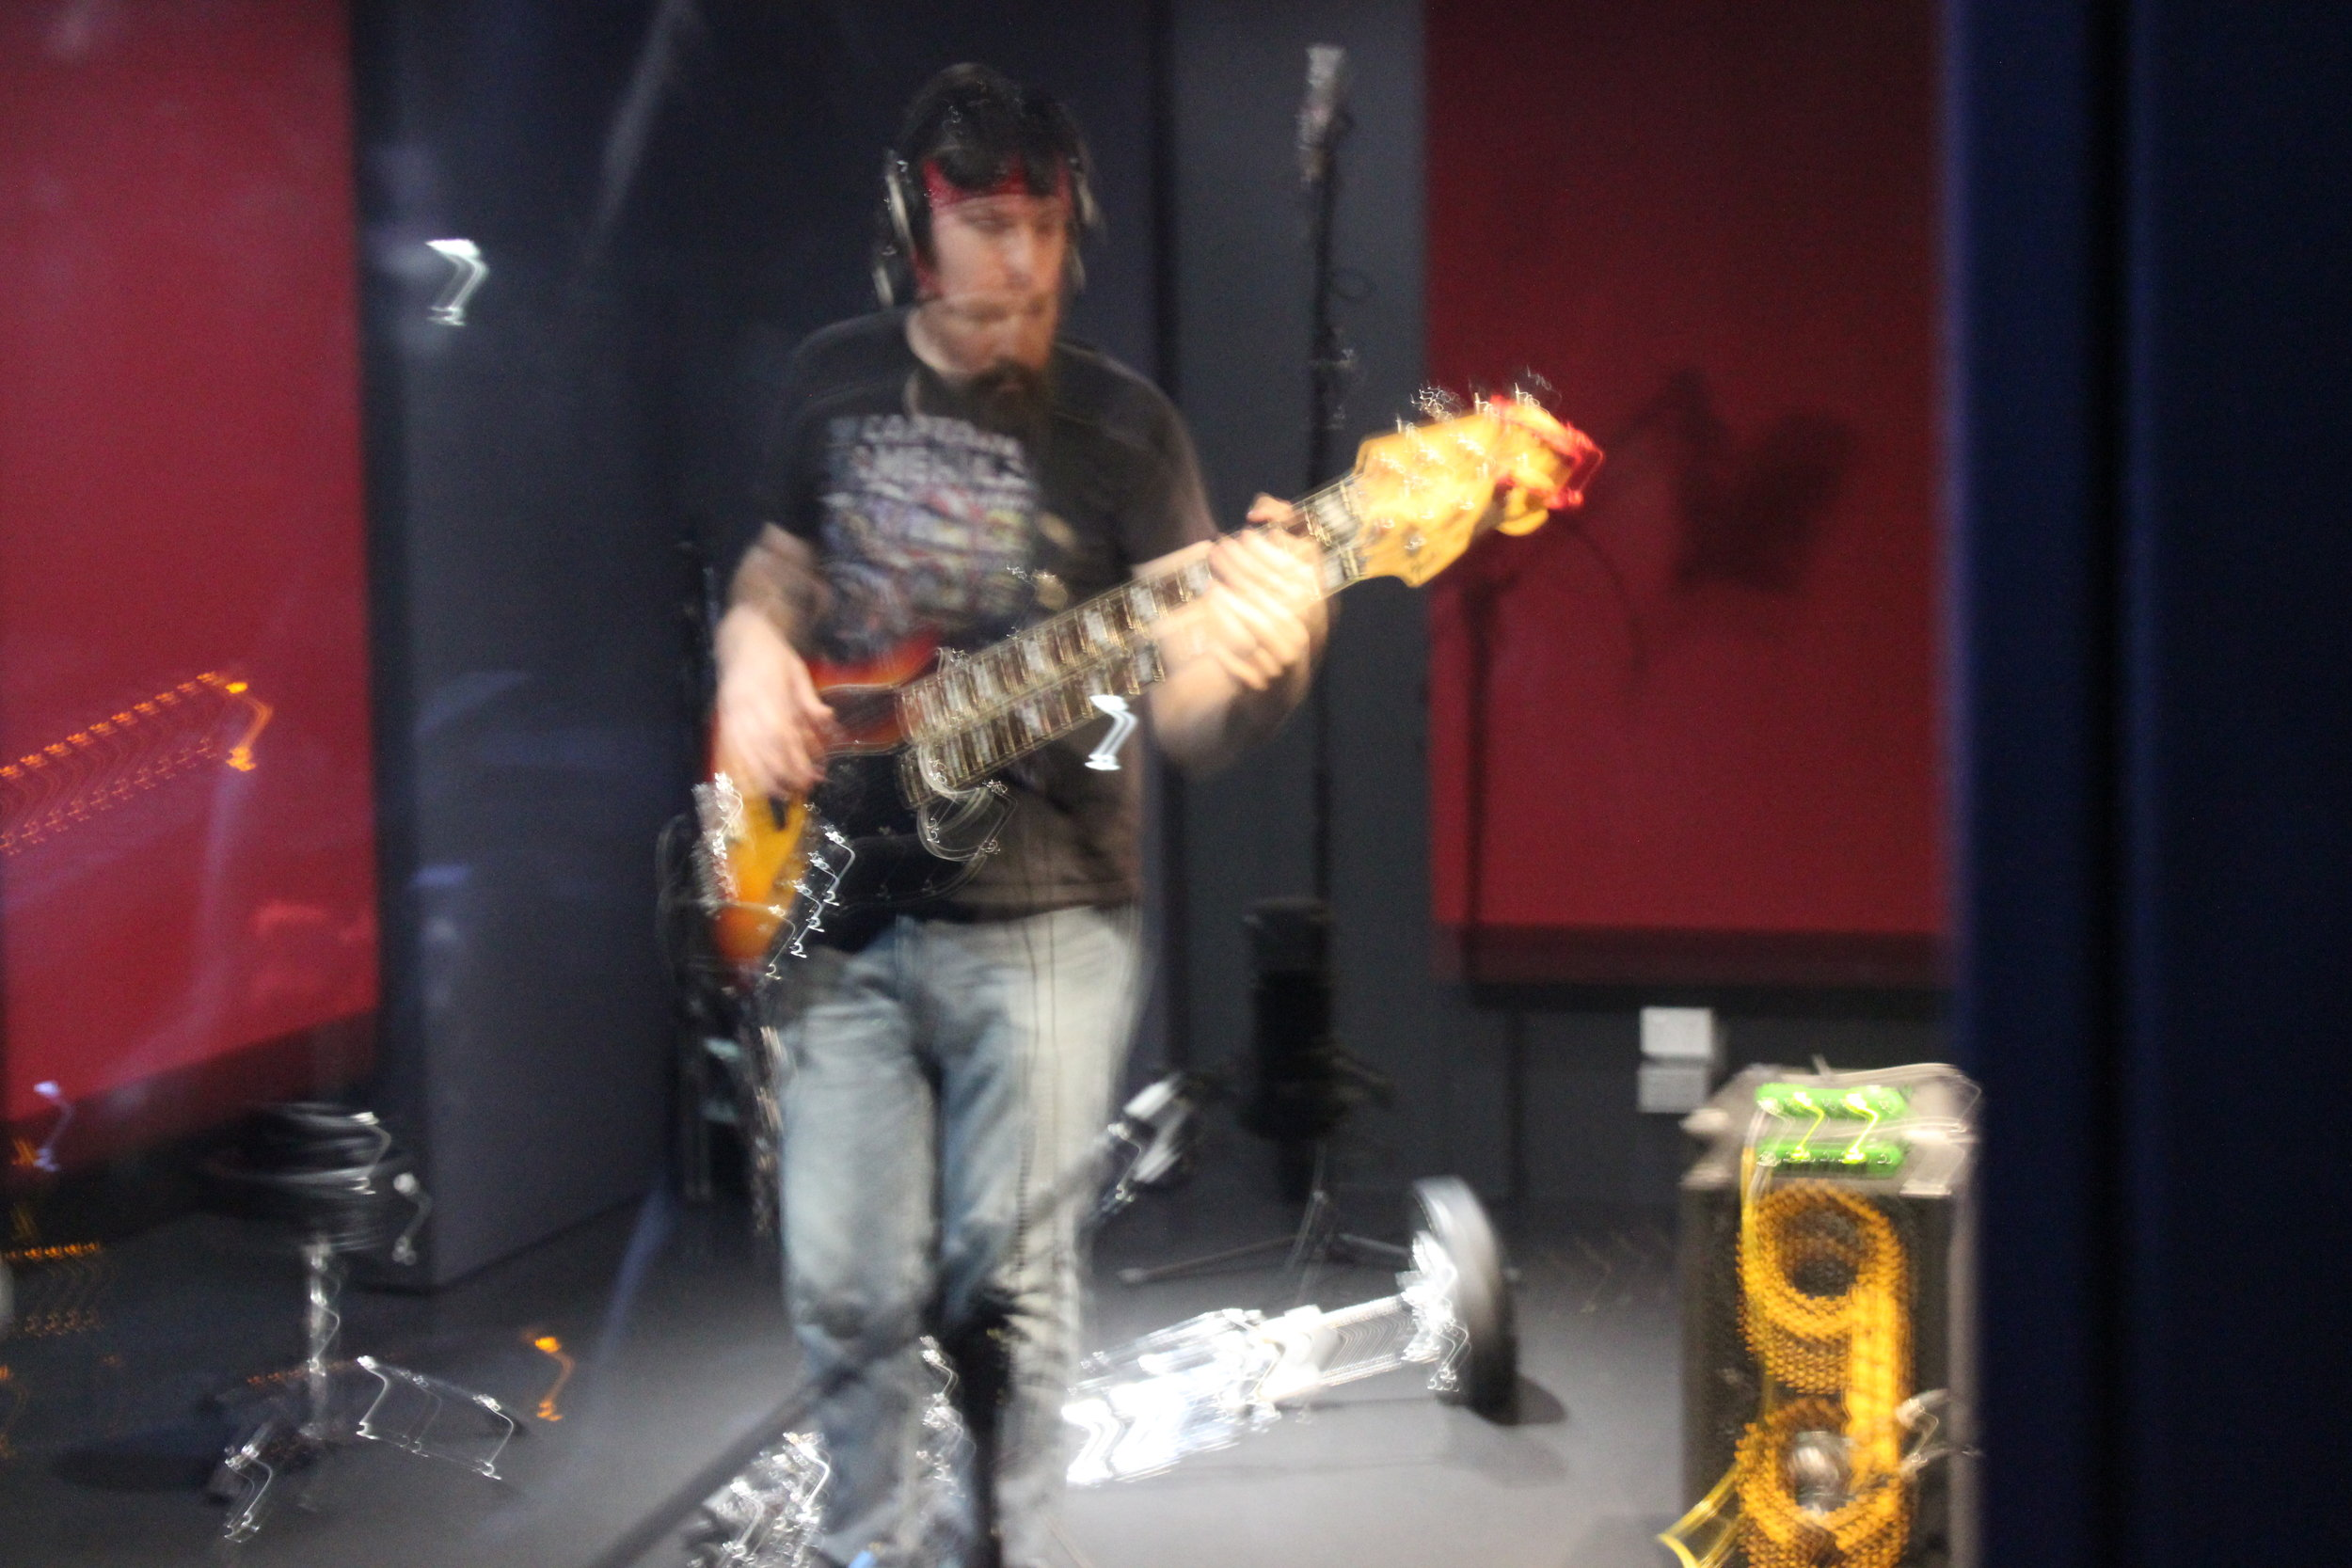 Sorry for the poor picture quality Pat but great job on the bass